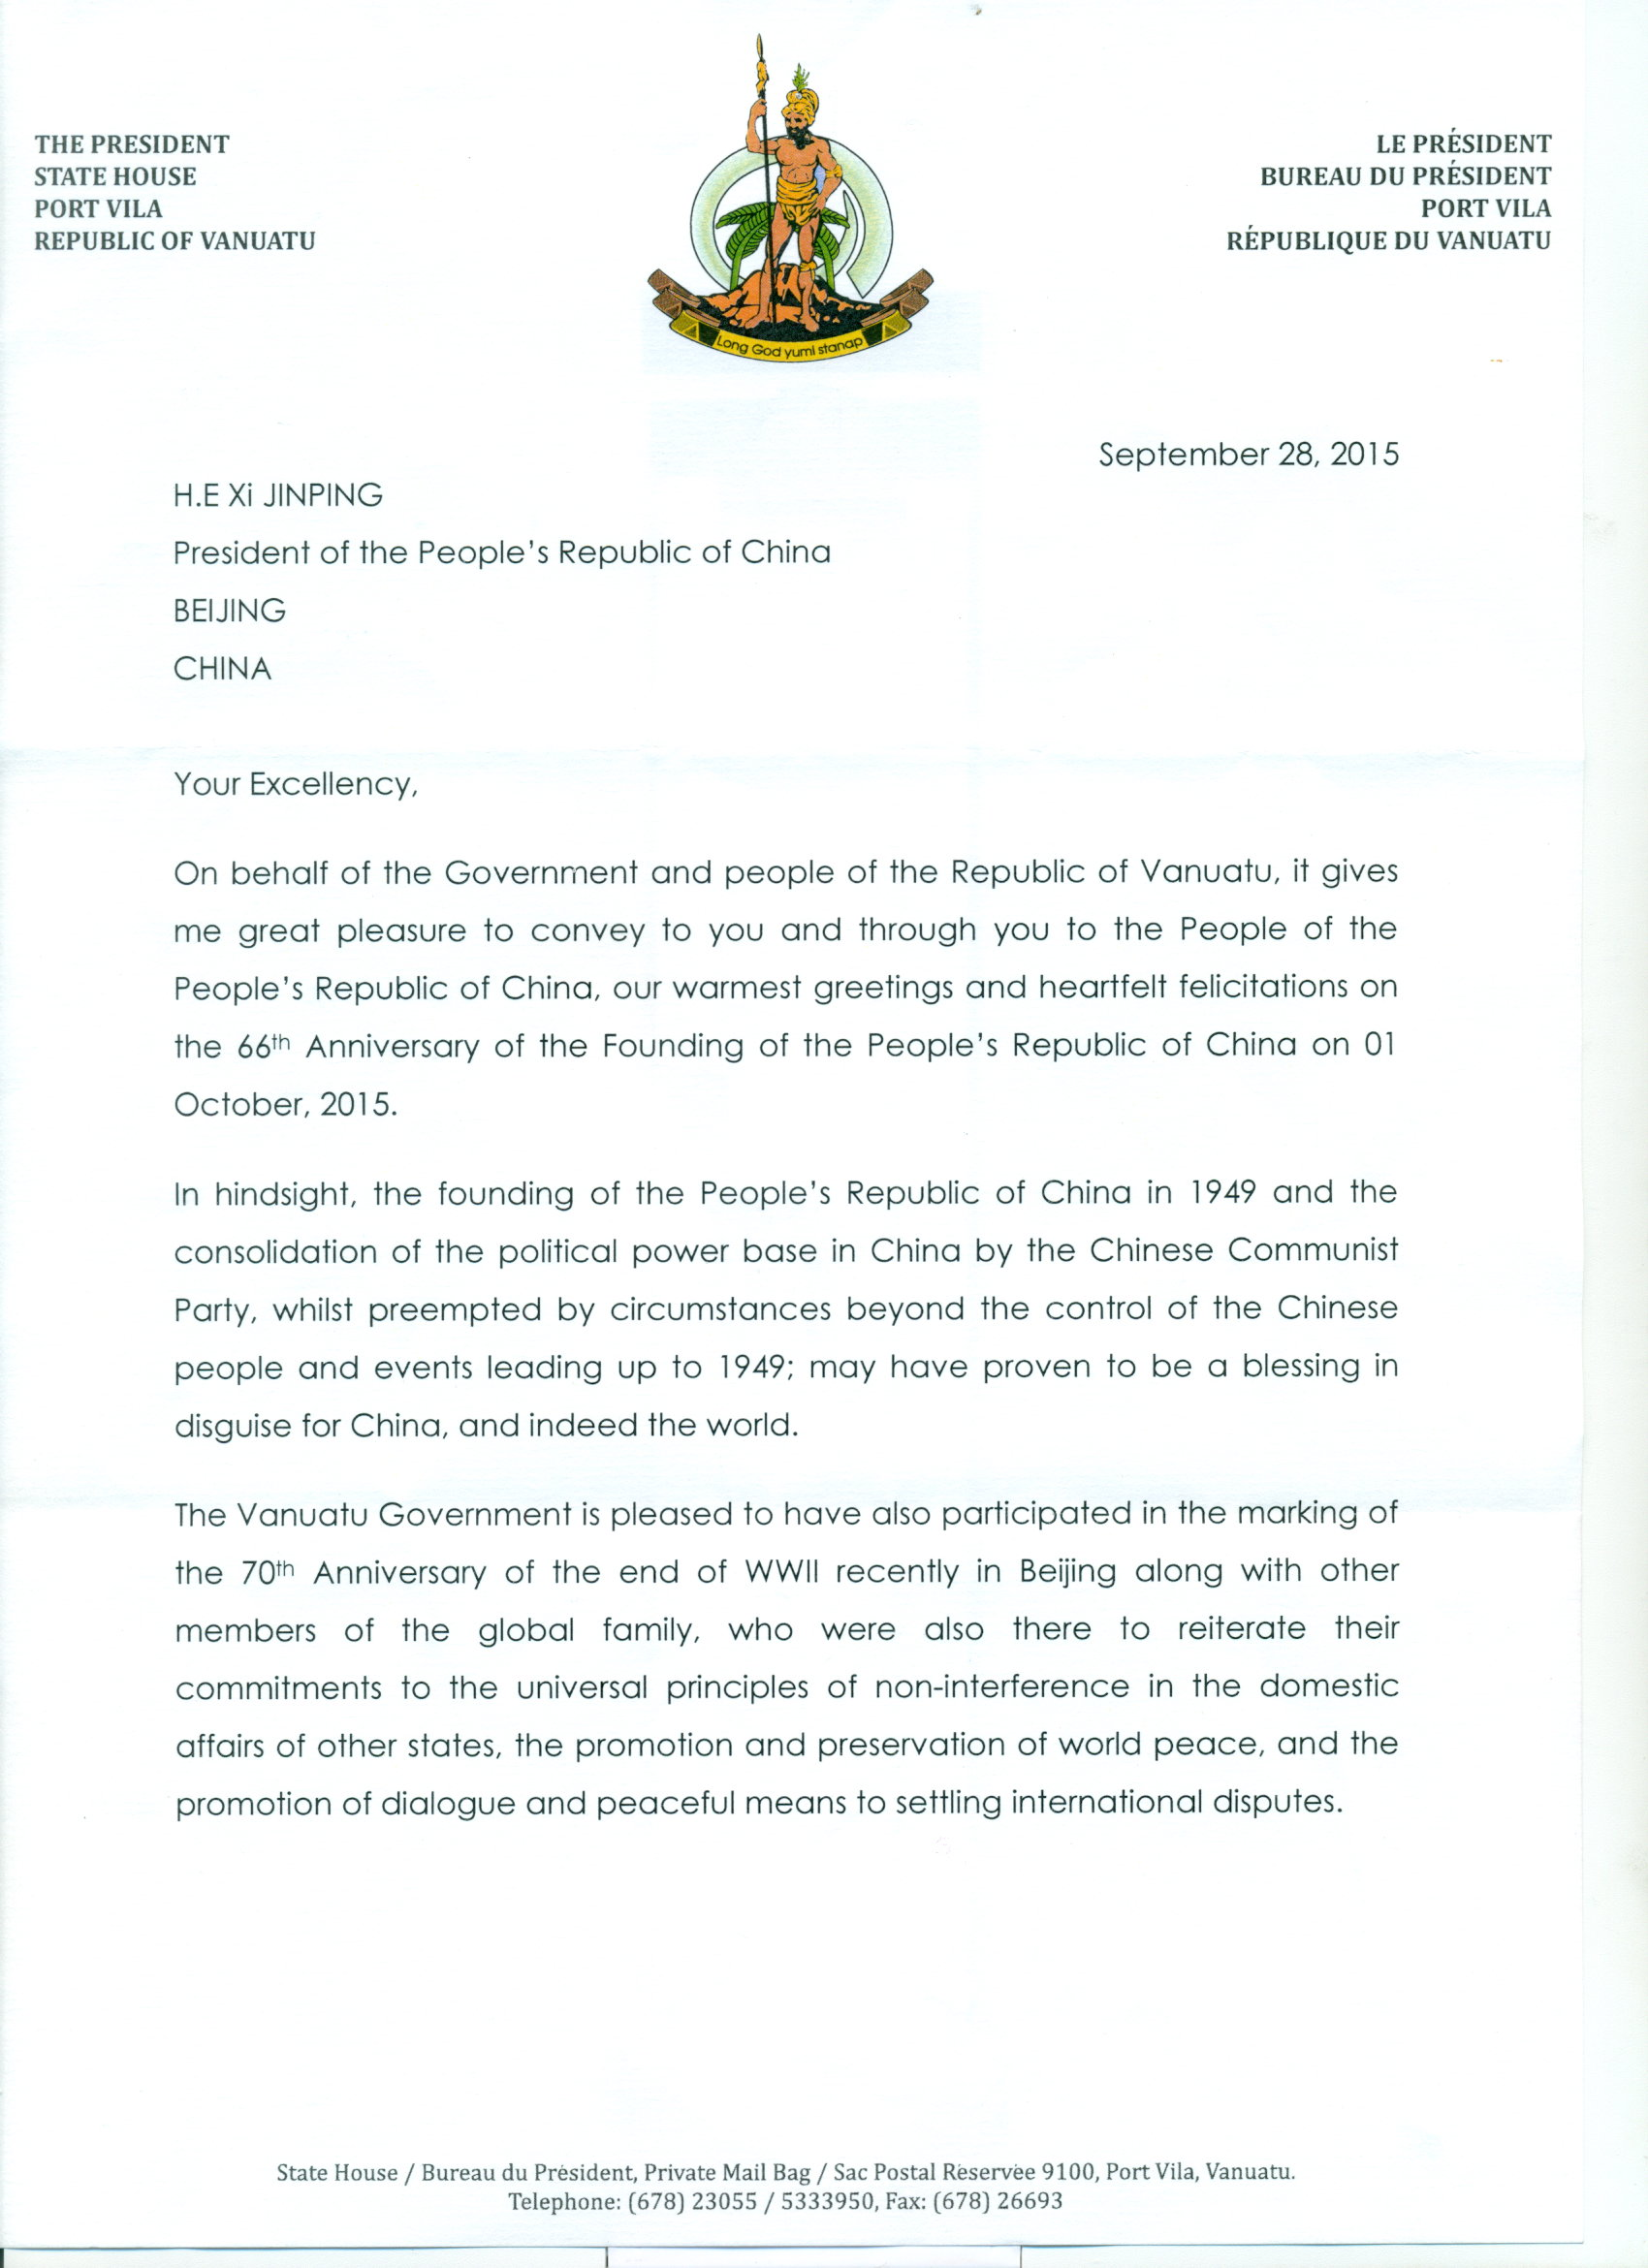 Congratulatory note from he president of vanuatu he baldwin lonsdale president of vanuatu sent a congratulatory note to he xi jinping president of china the note reads as follows thecheapjerseys Gallery